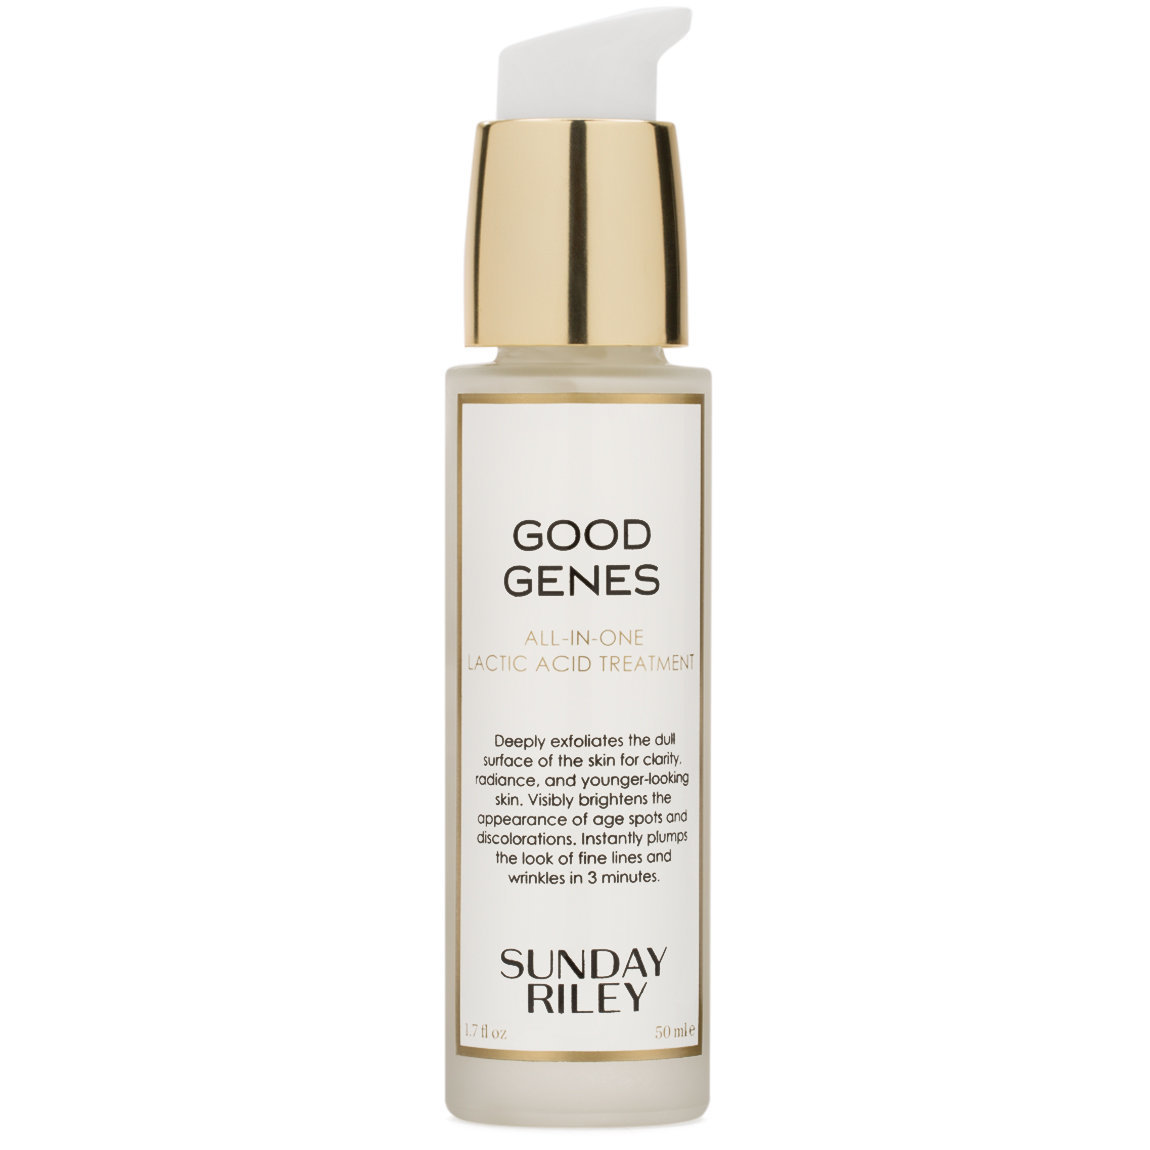 Sunday Riley Good Genes All-In-One Lactic Acid Treatment 50 ml product swatch.